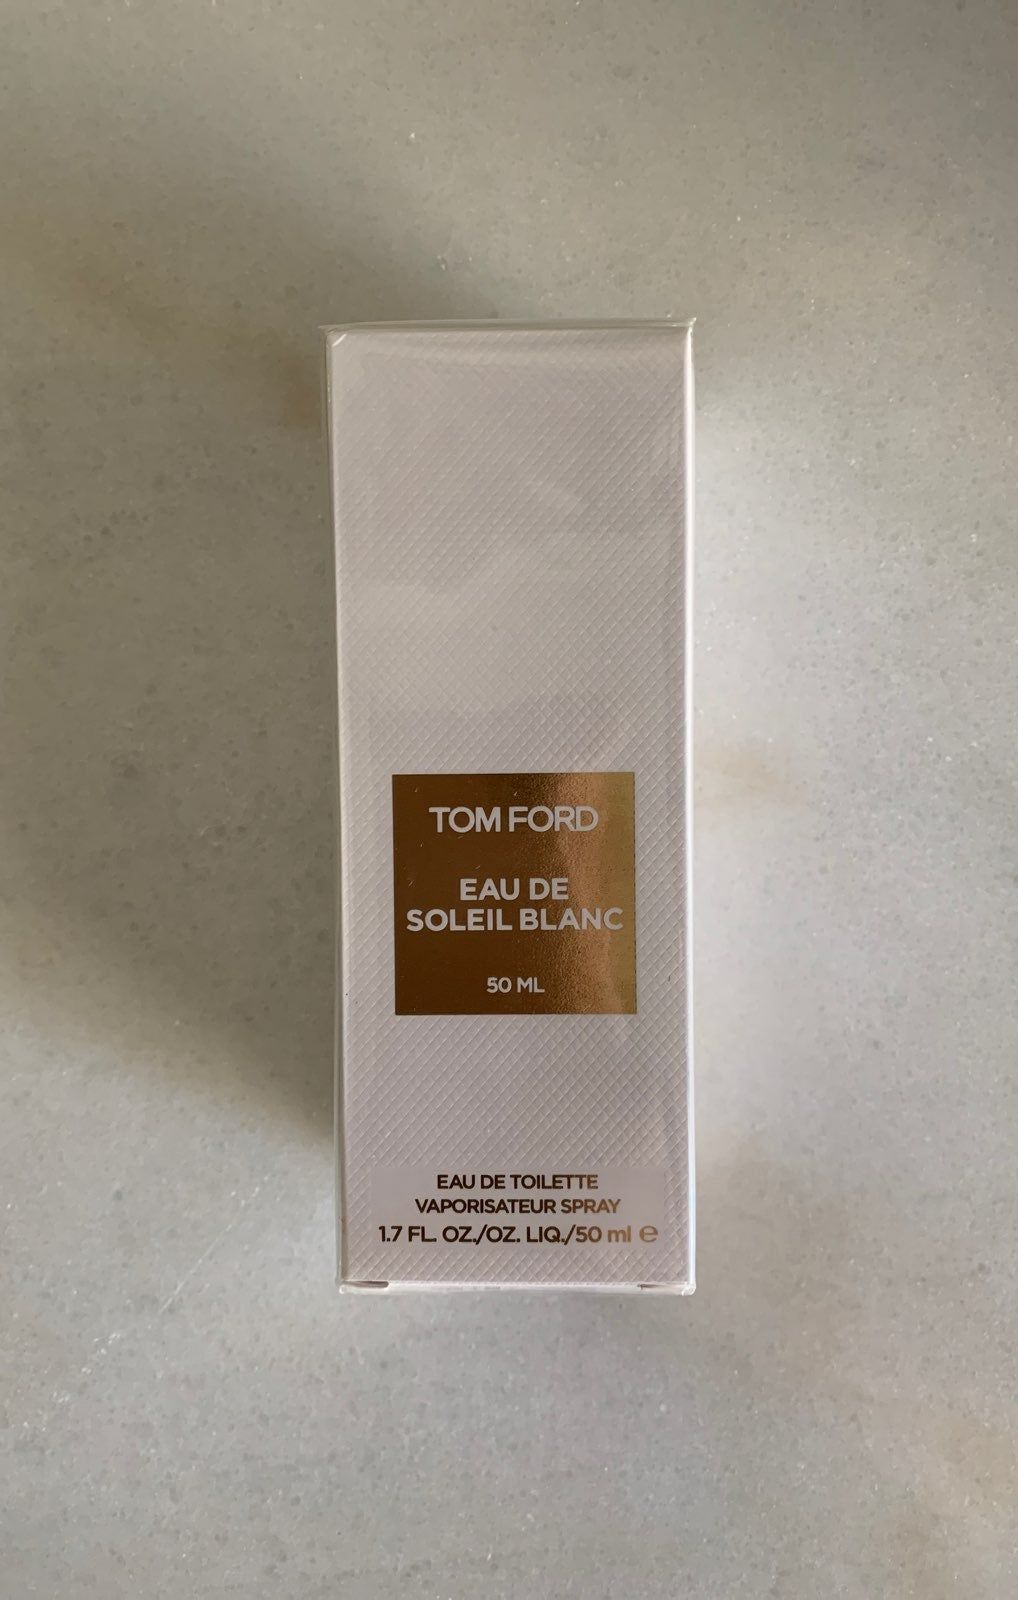 Tom Ford Eau De Soleil Blanc 50ml Eau De Toilette Spray Brand